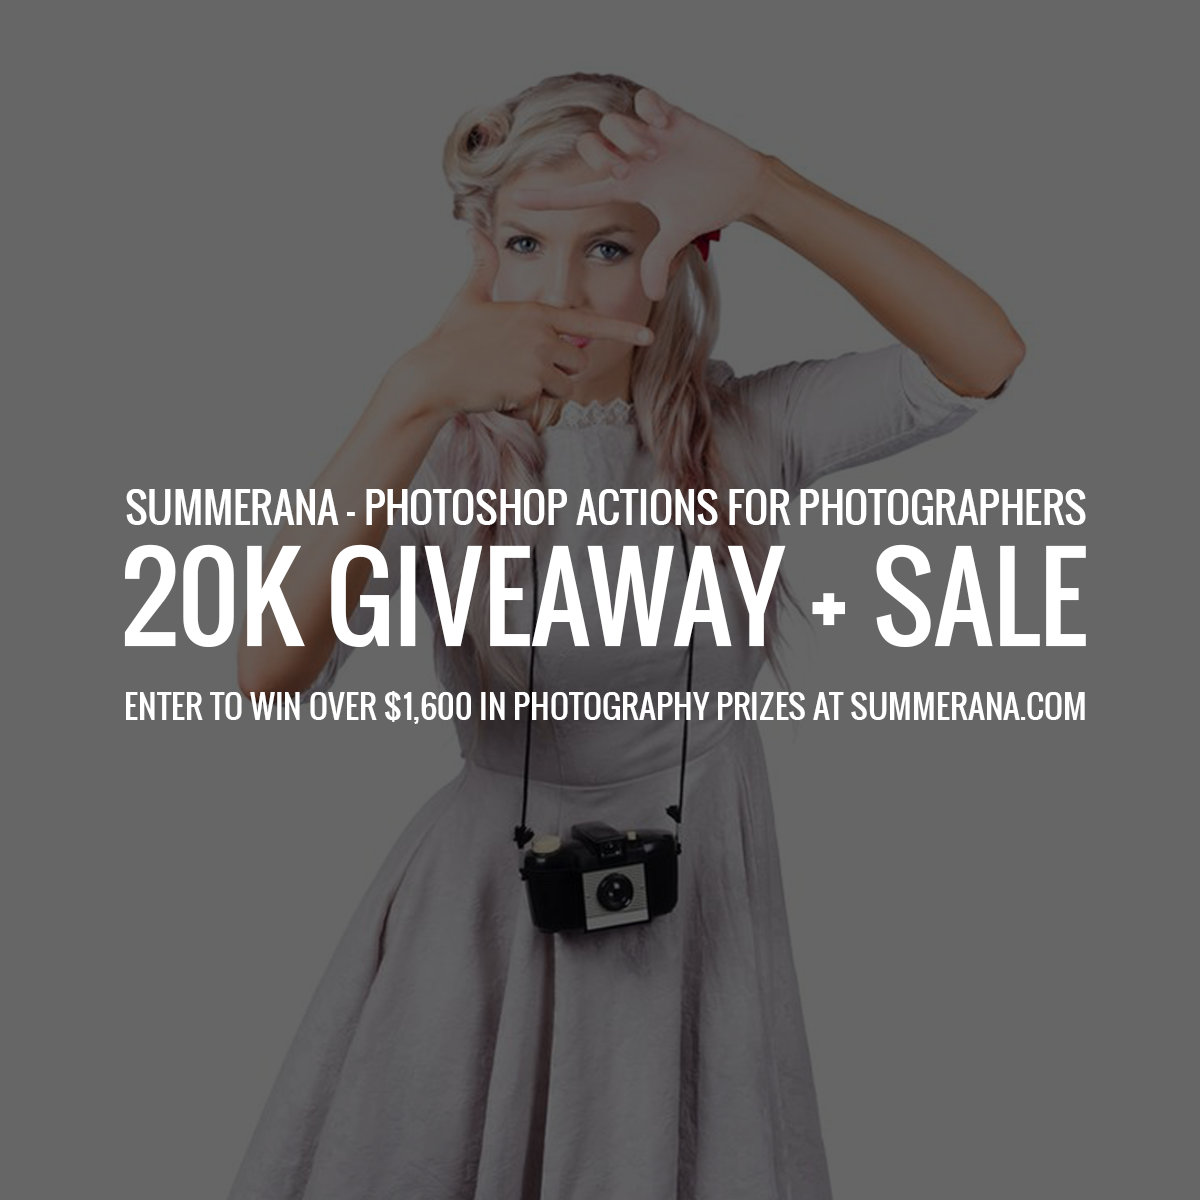 summerana-photoshop-actions-for-photographers-giveaway-and-sale